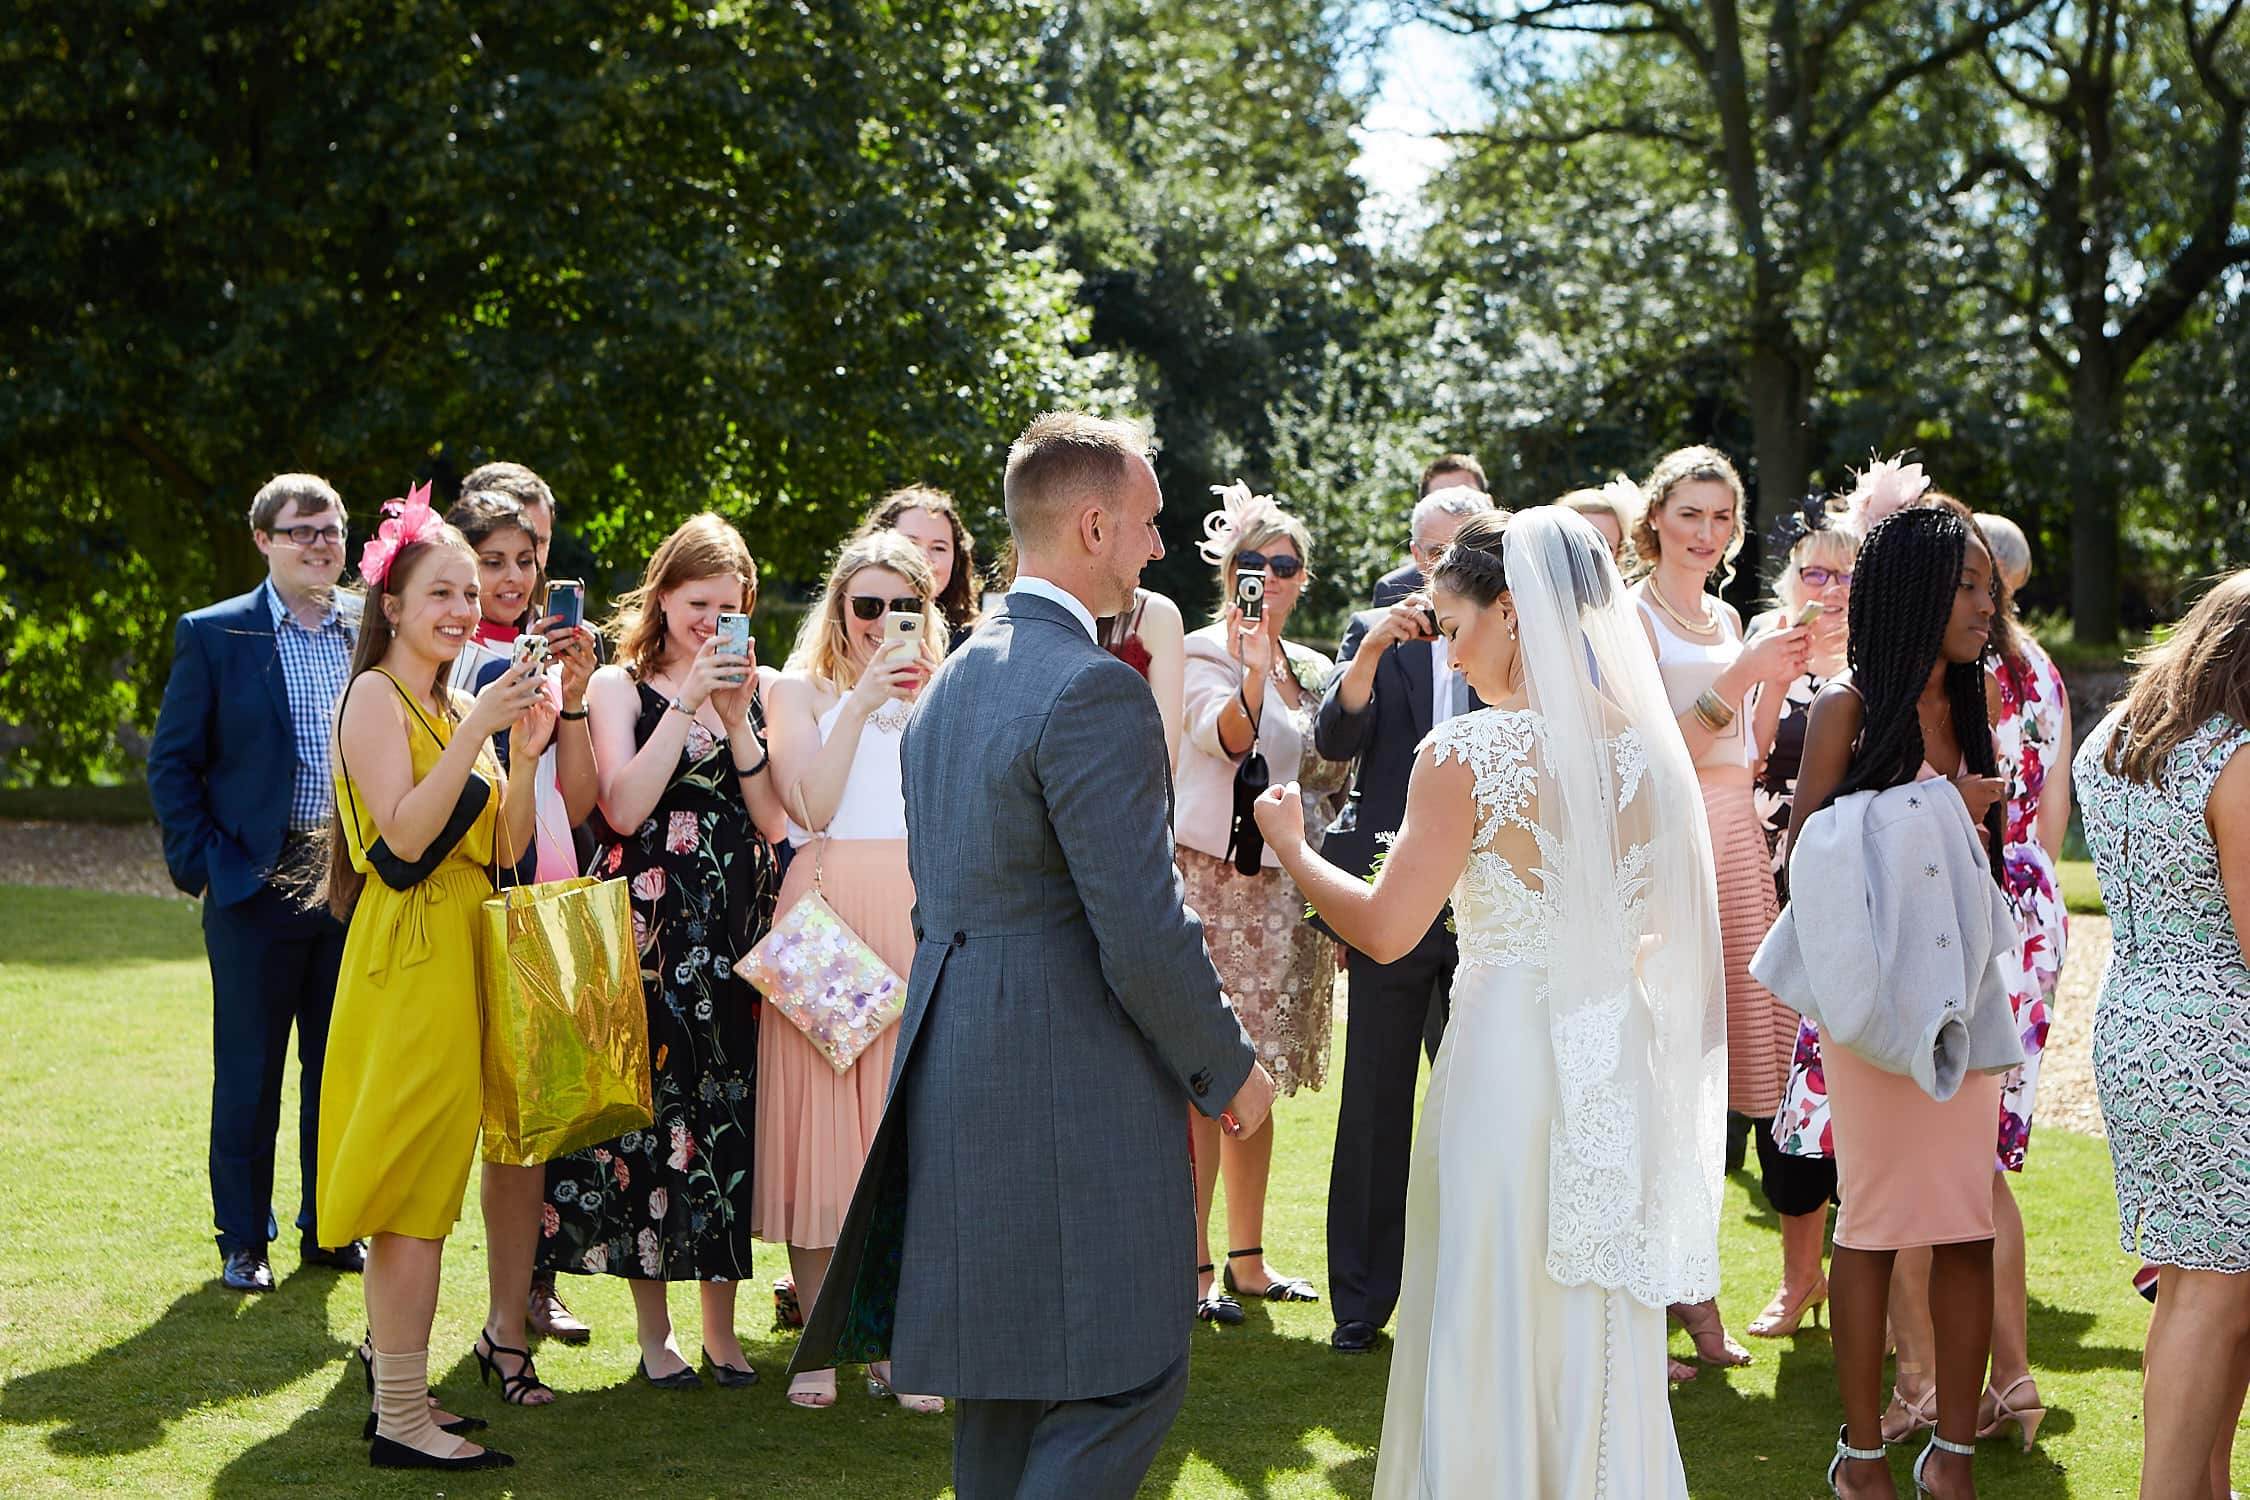 Bride and groom face friends as they photograph their wedding day